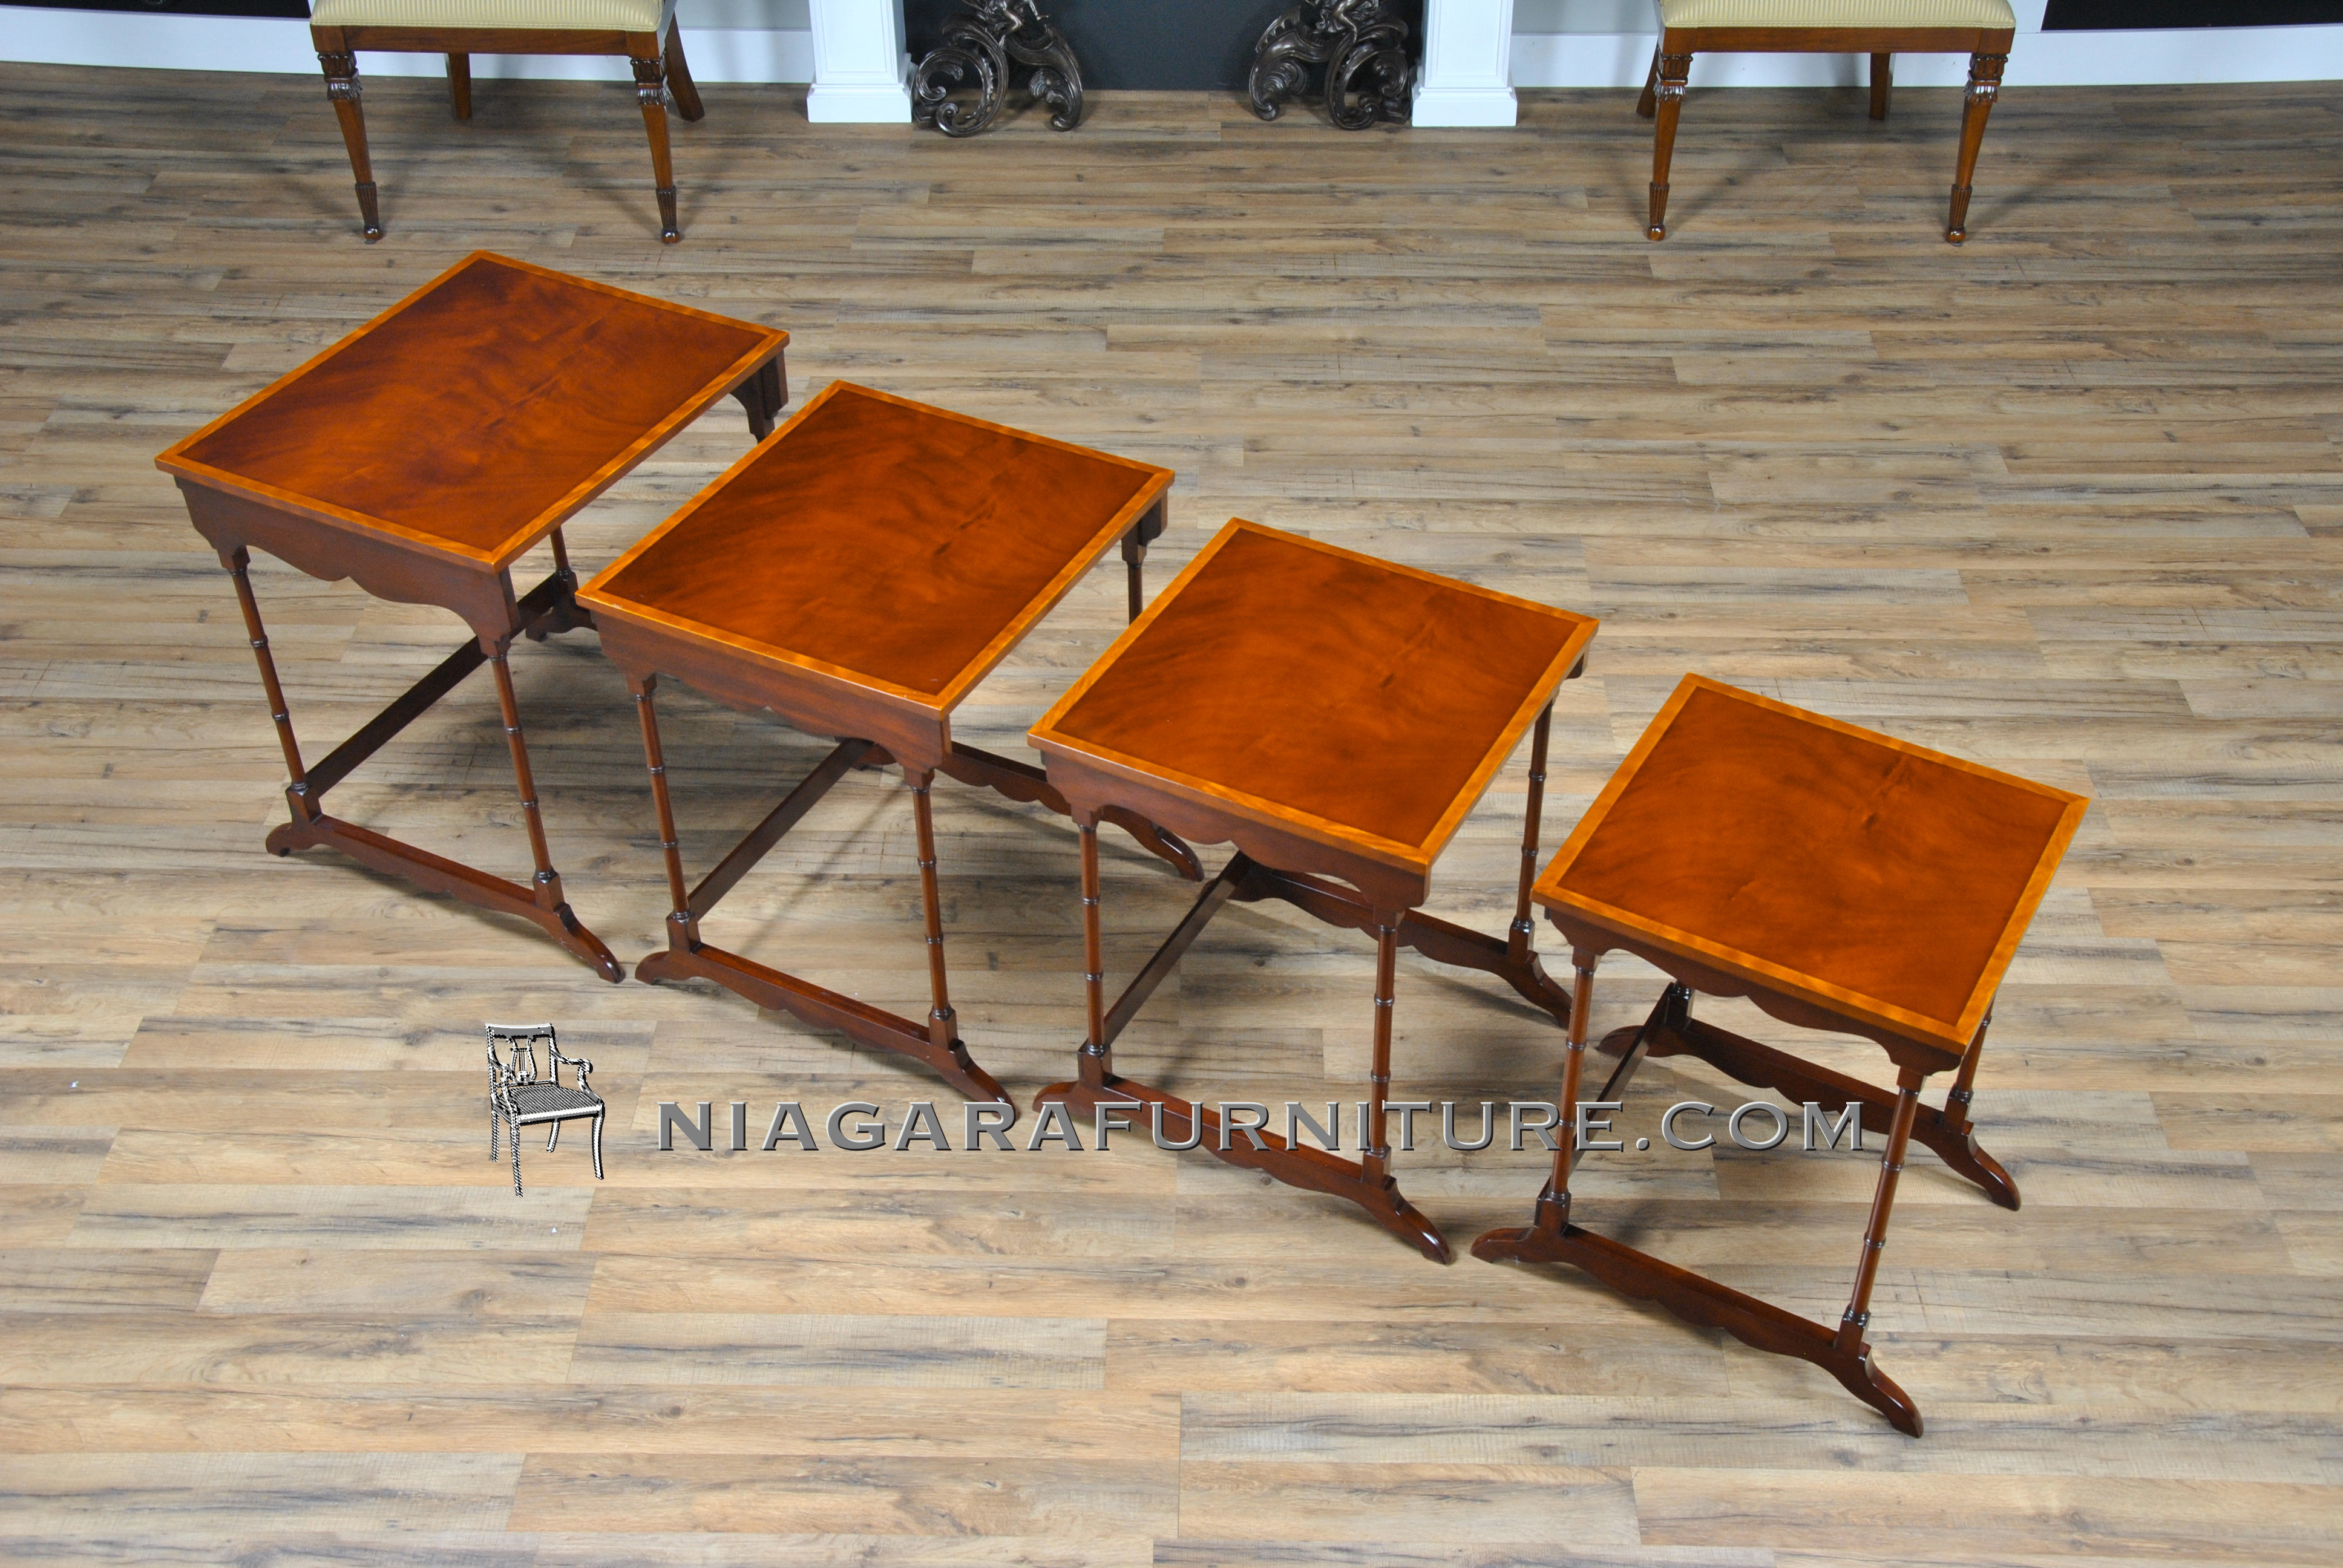 Wonderful image of Large Mahogany Nesting Tables Niagara Furniture with #B14600 color and 3872x2592 pixels